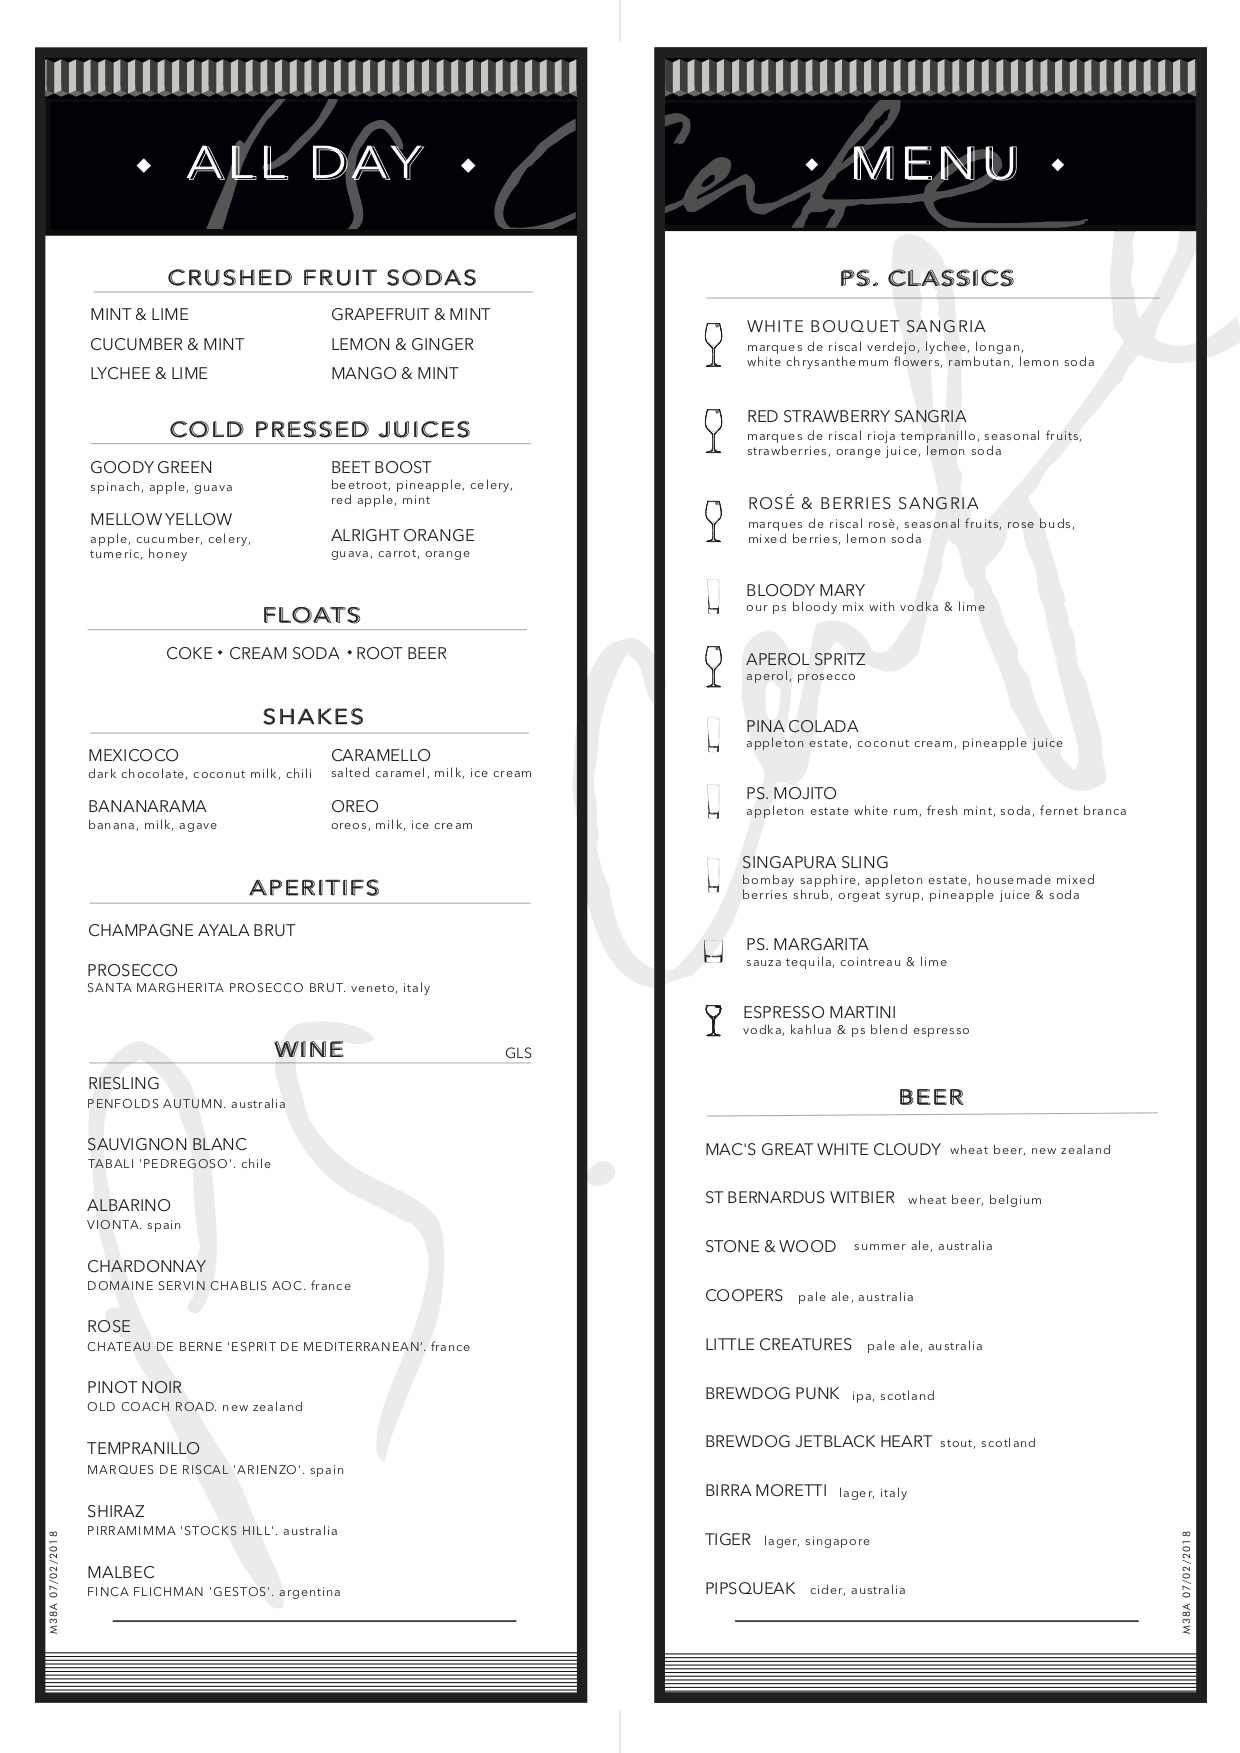 PS Cafe @ Martin Road - All Day Menu - TREAT